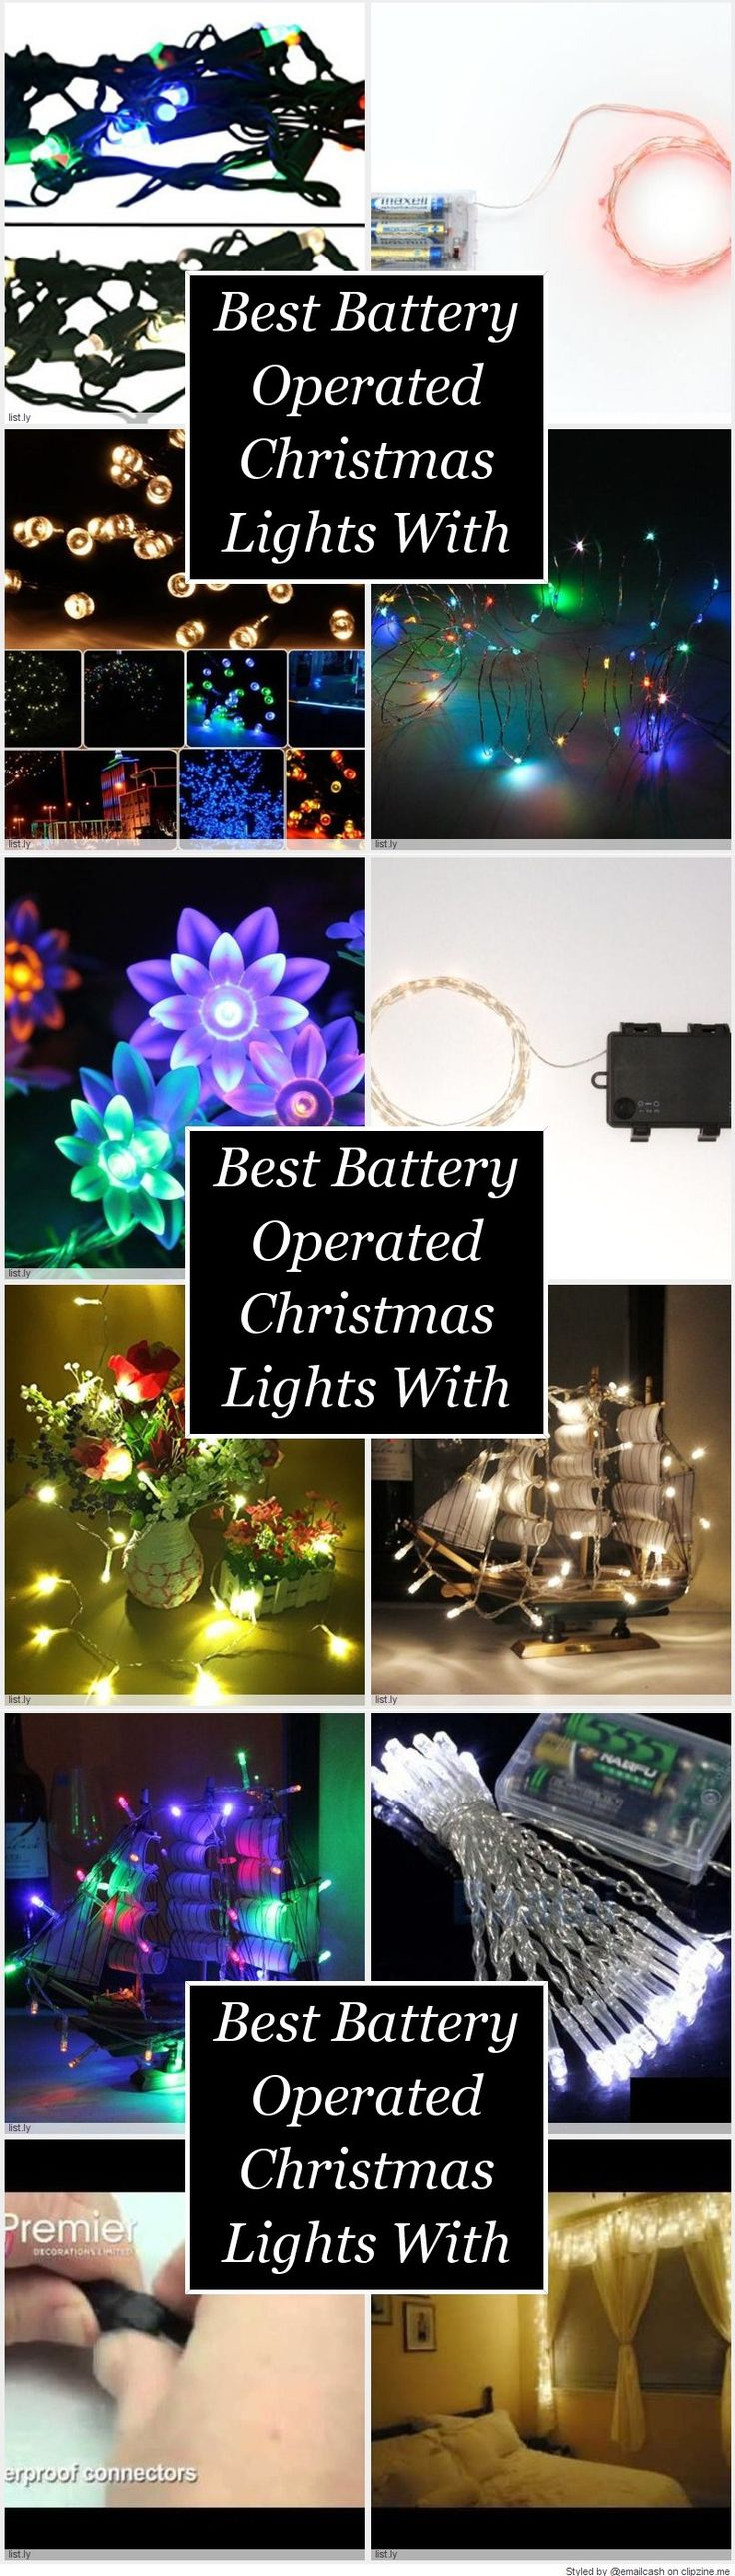 battery operated christmas lights with timer - Christmas Light Timers